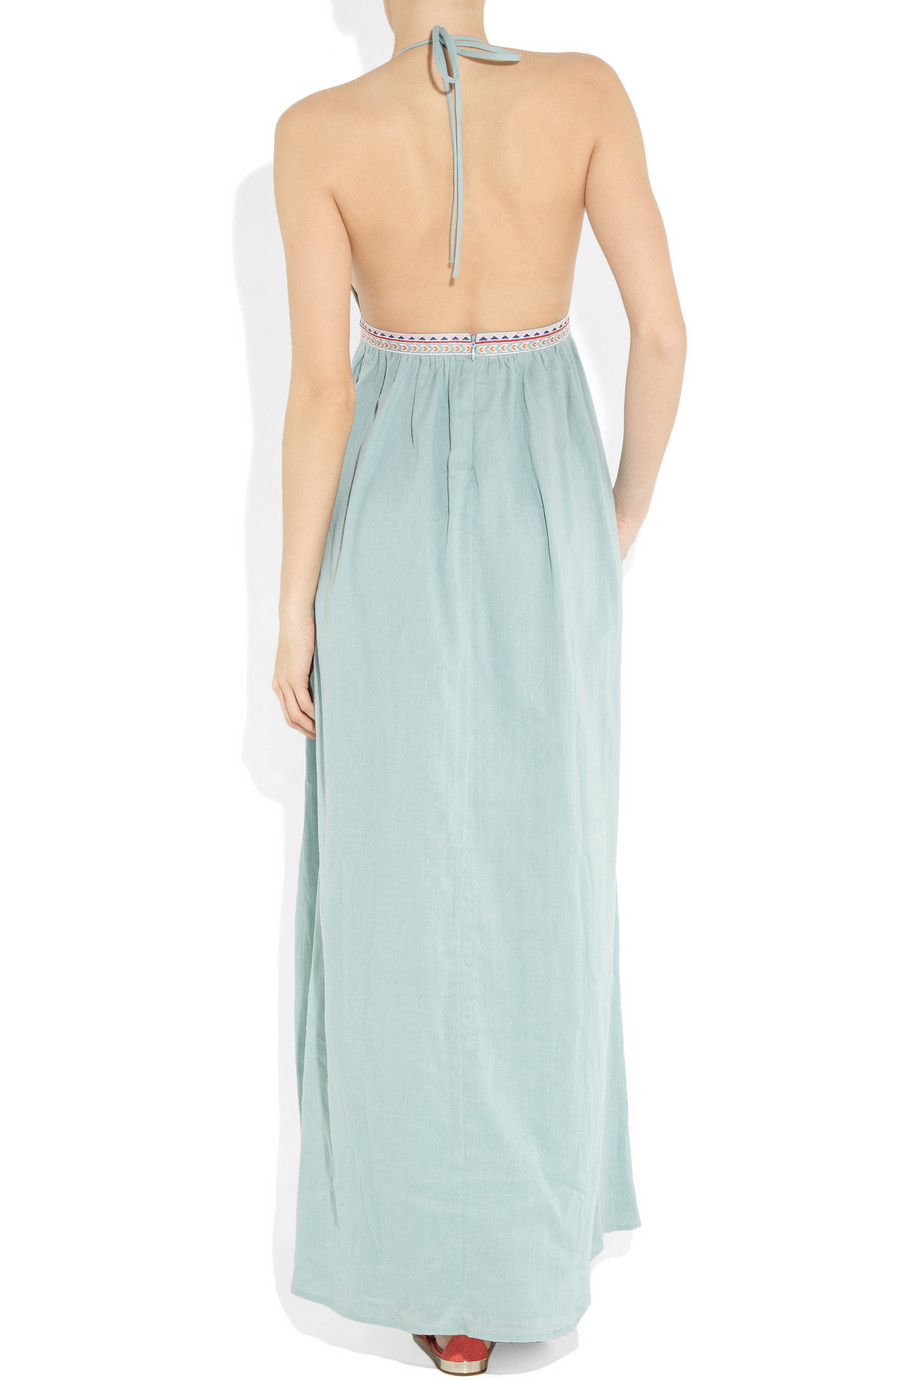 Mara hoffman embroidered voile maxi dress